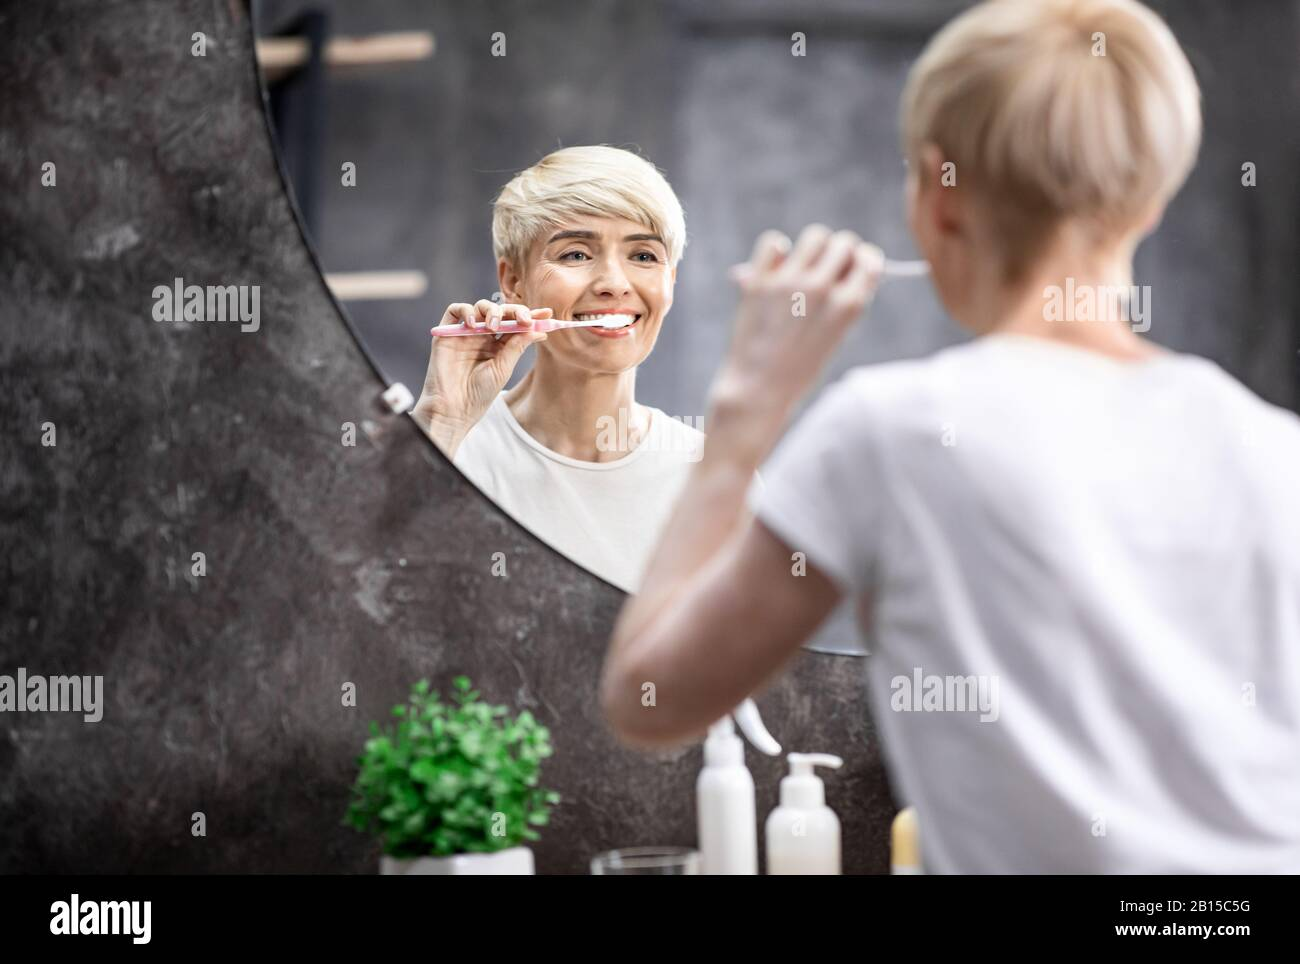 Lady Brushing White Teeth Standing In Bathroom In The Morning Stock Photo